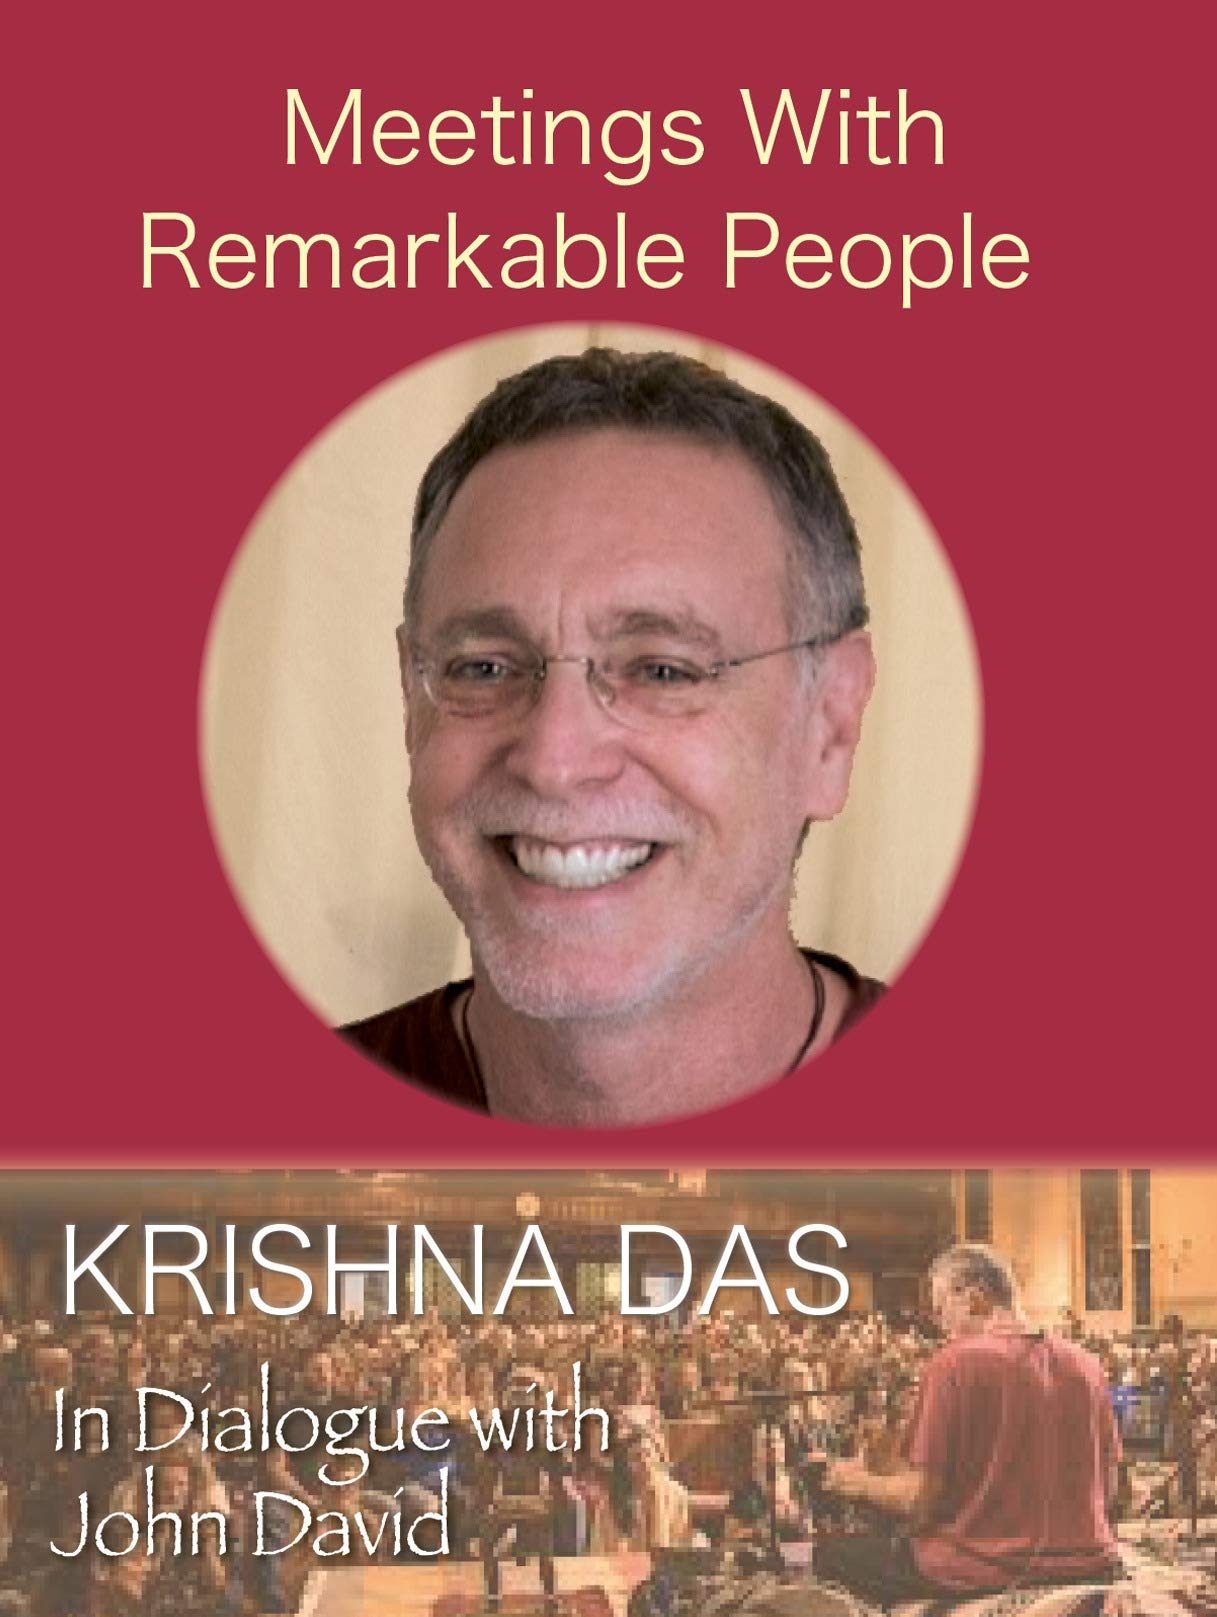 Meeting with Remarkable People - Krishna Das